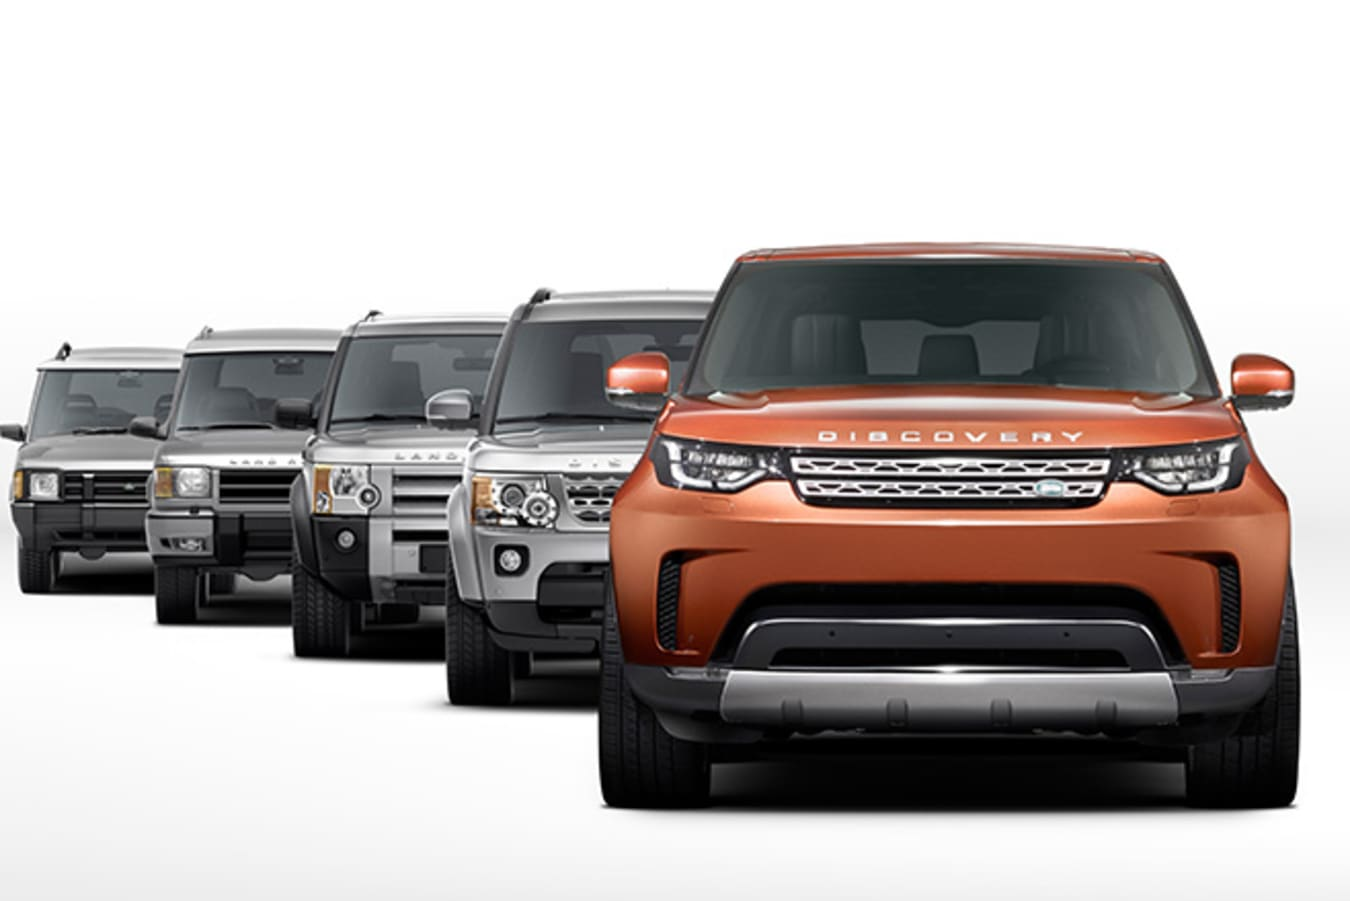 Land Rover Discovery historical models